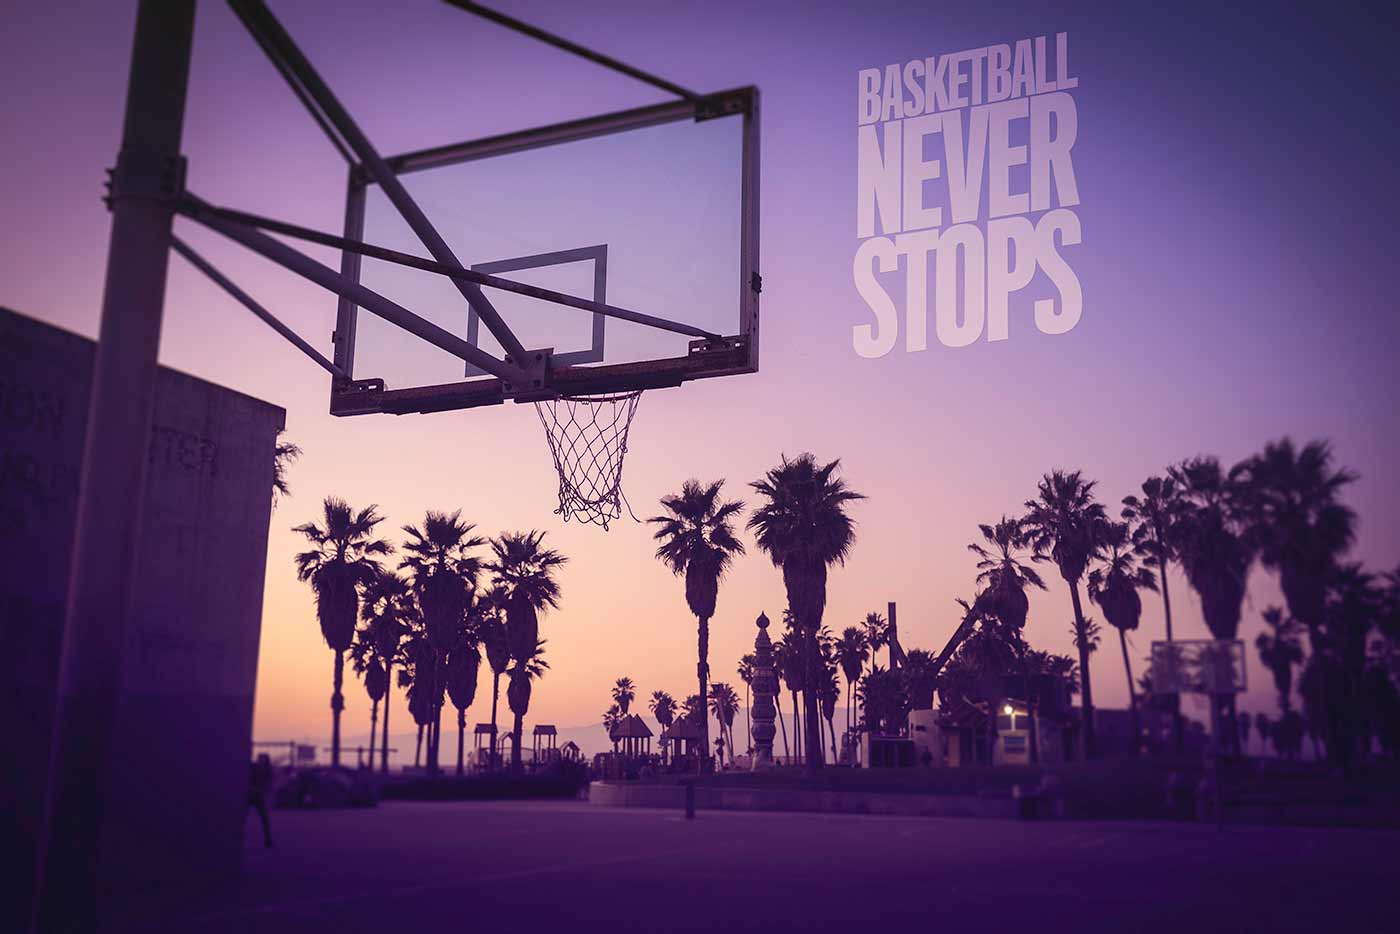 basketballneverstops